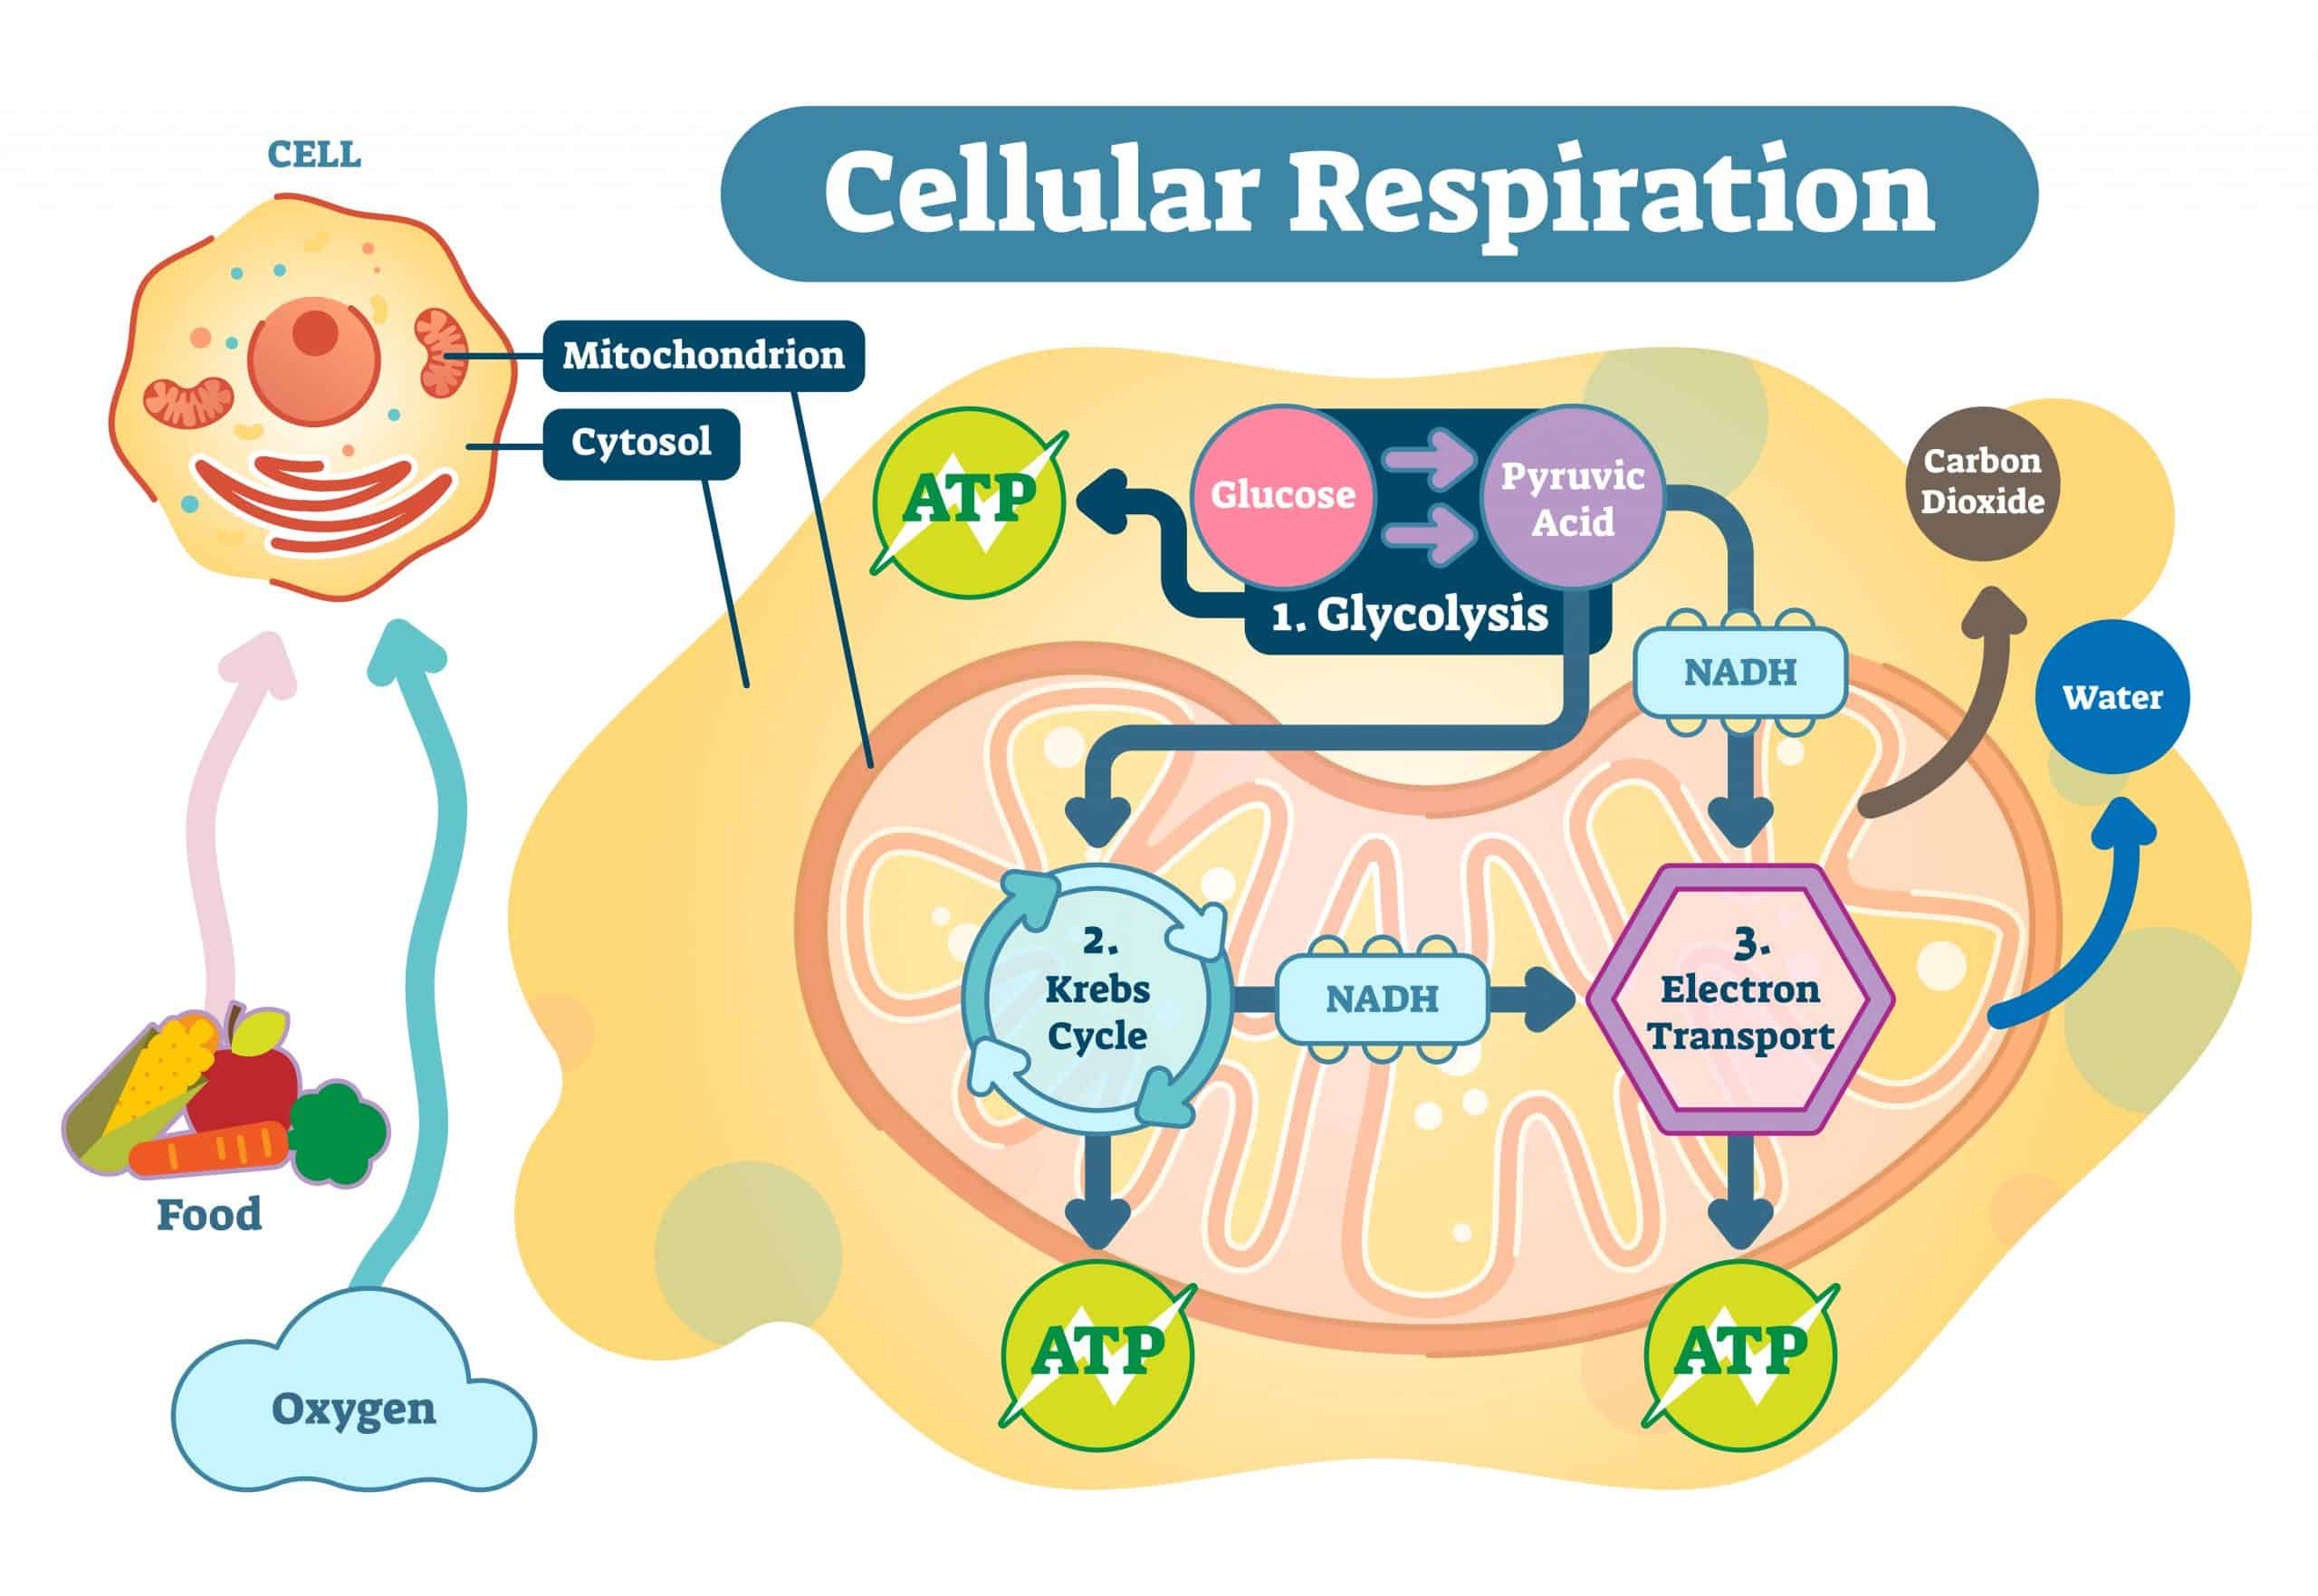 Diagram showing how cellular respiration works